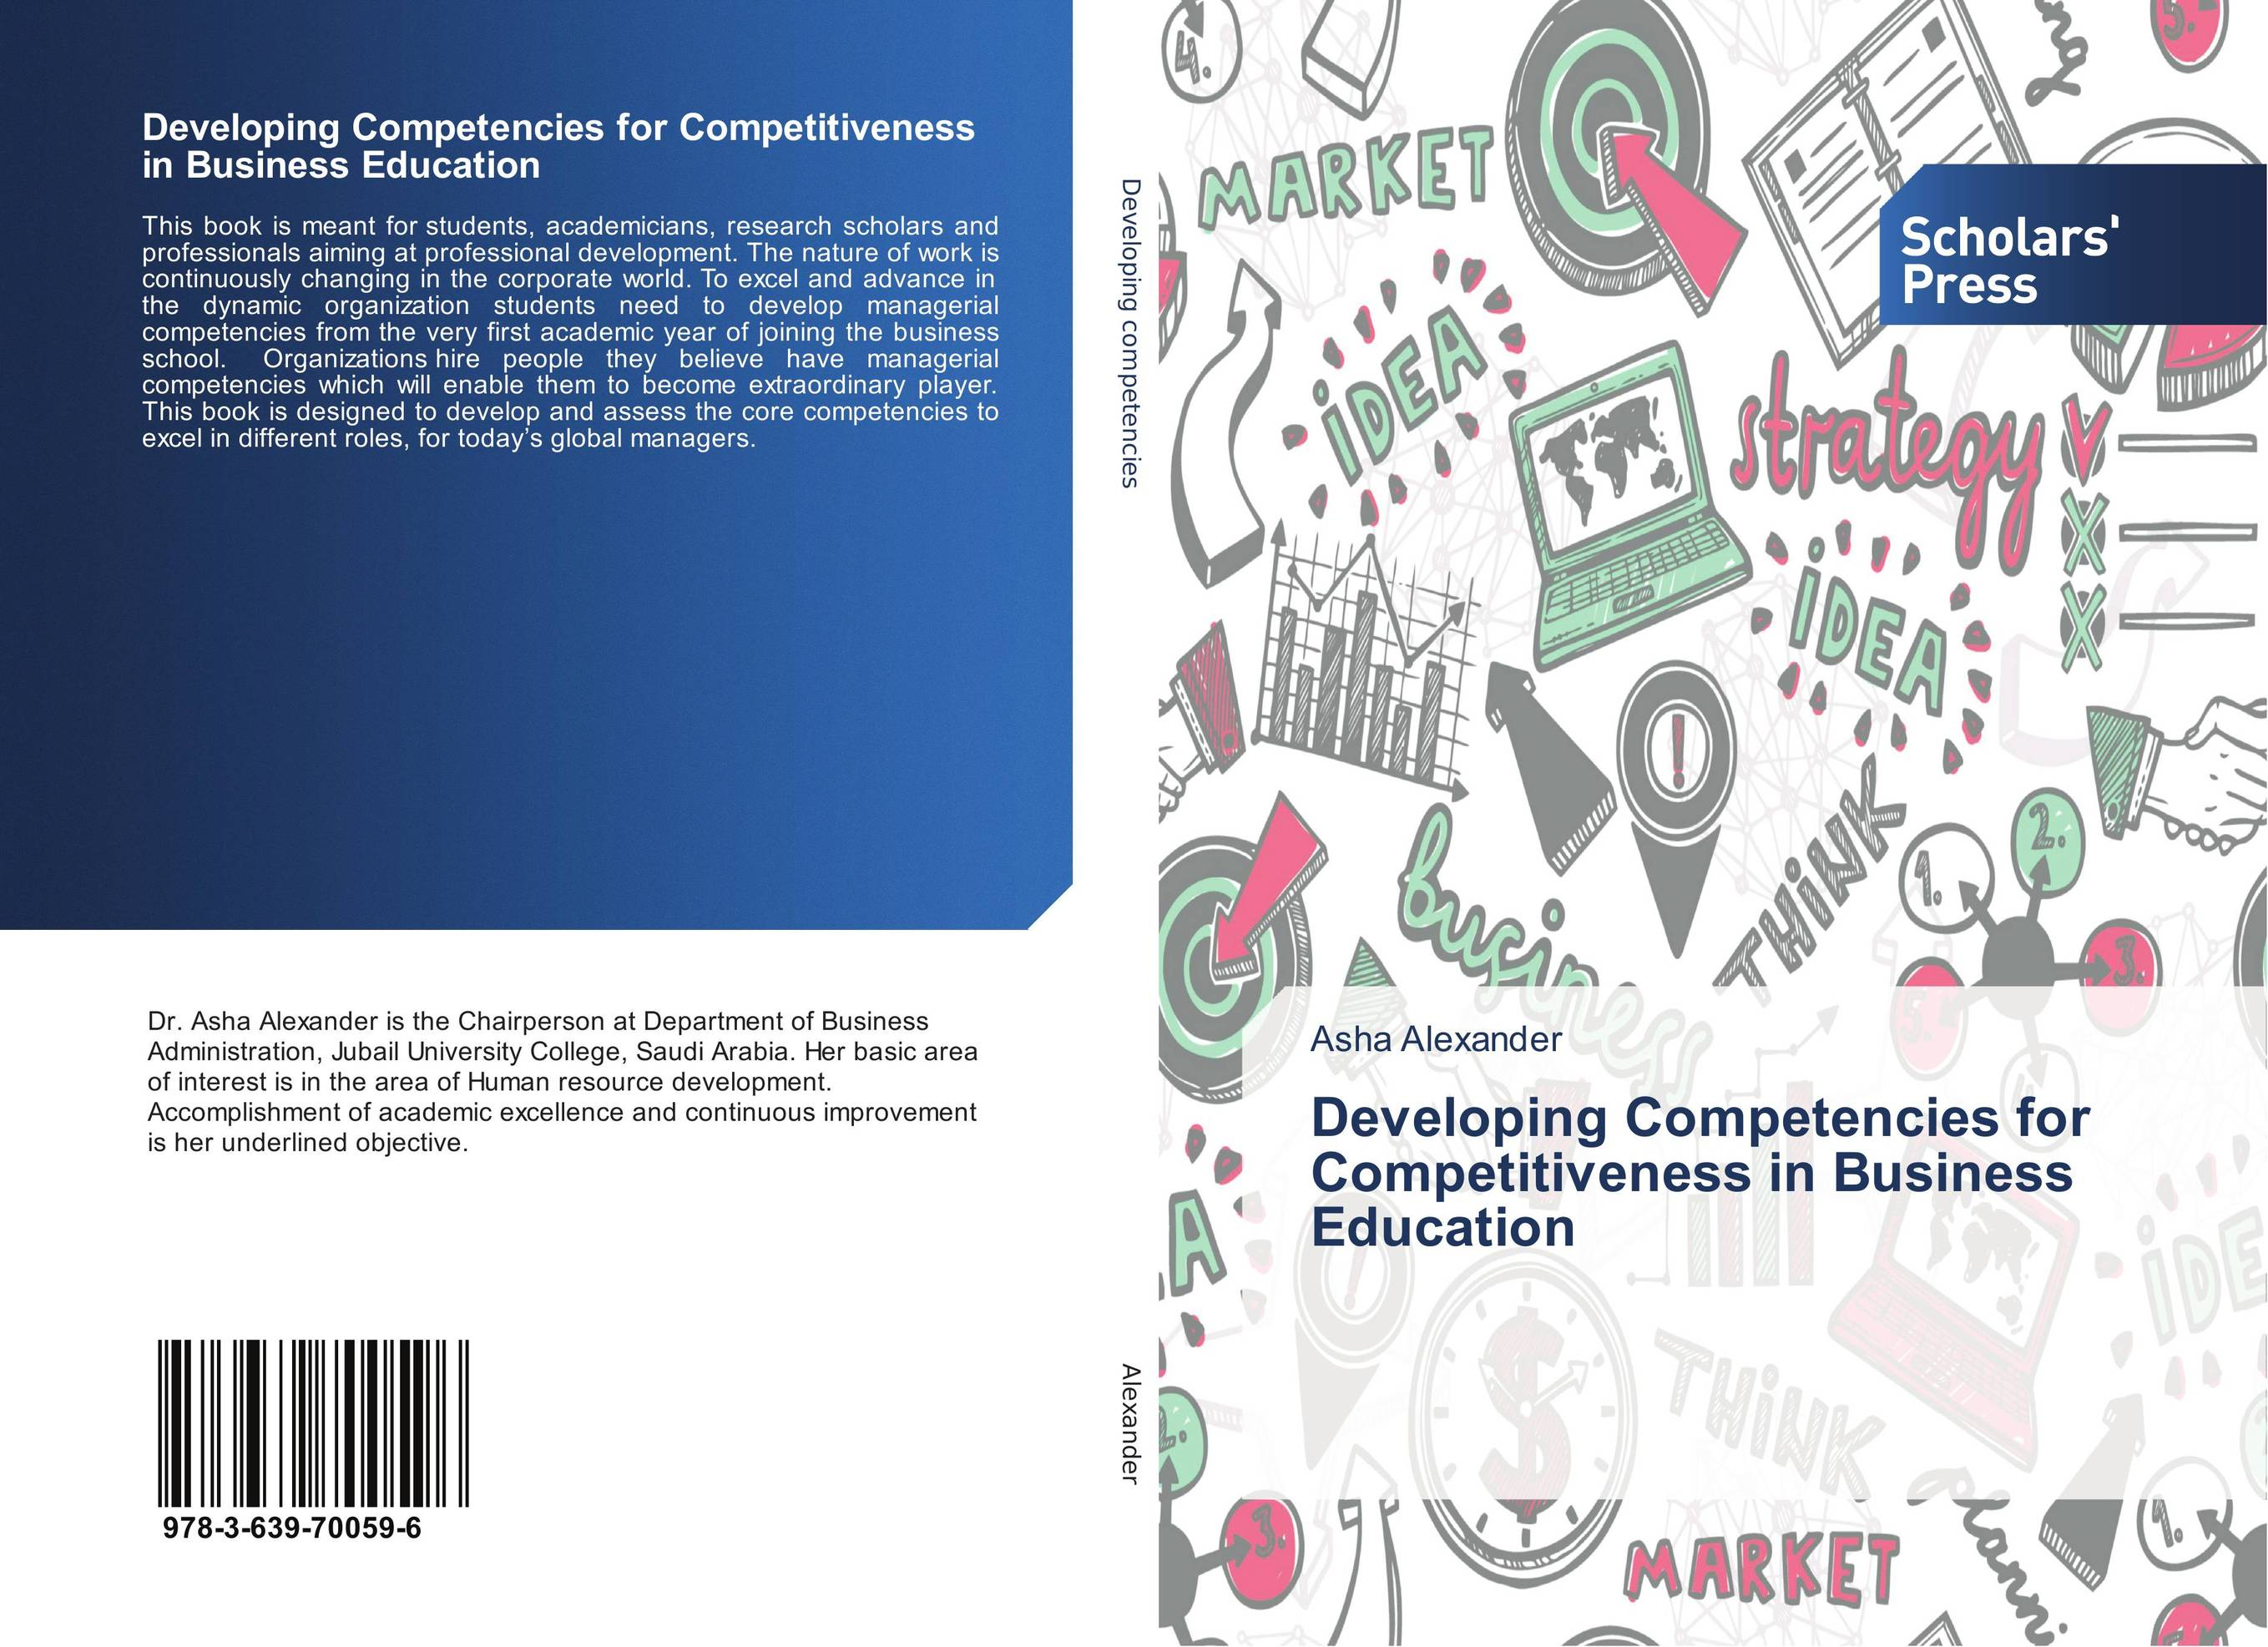 Developing Competencies for Competitiveness in Business Education chip espinoza managing the millennials discover the core competencies for managing today s workforce